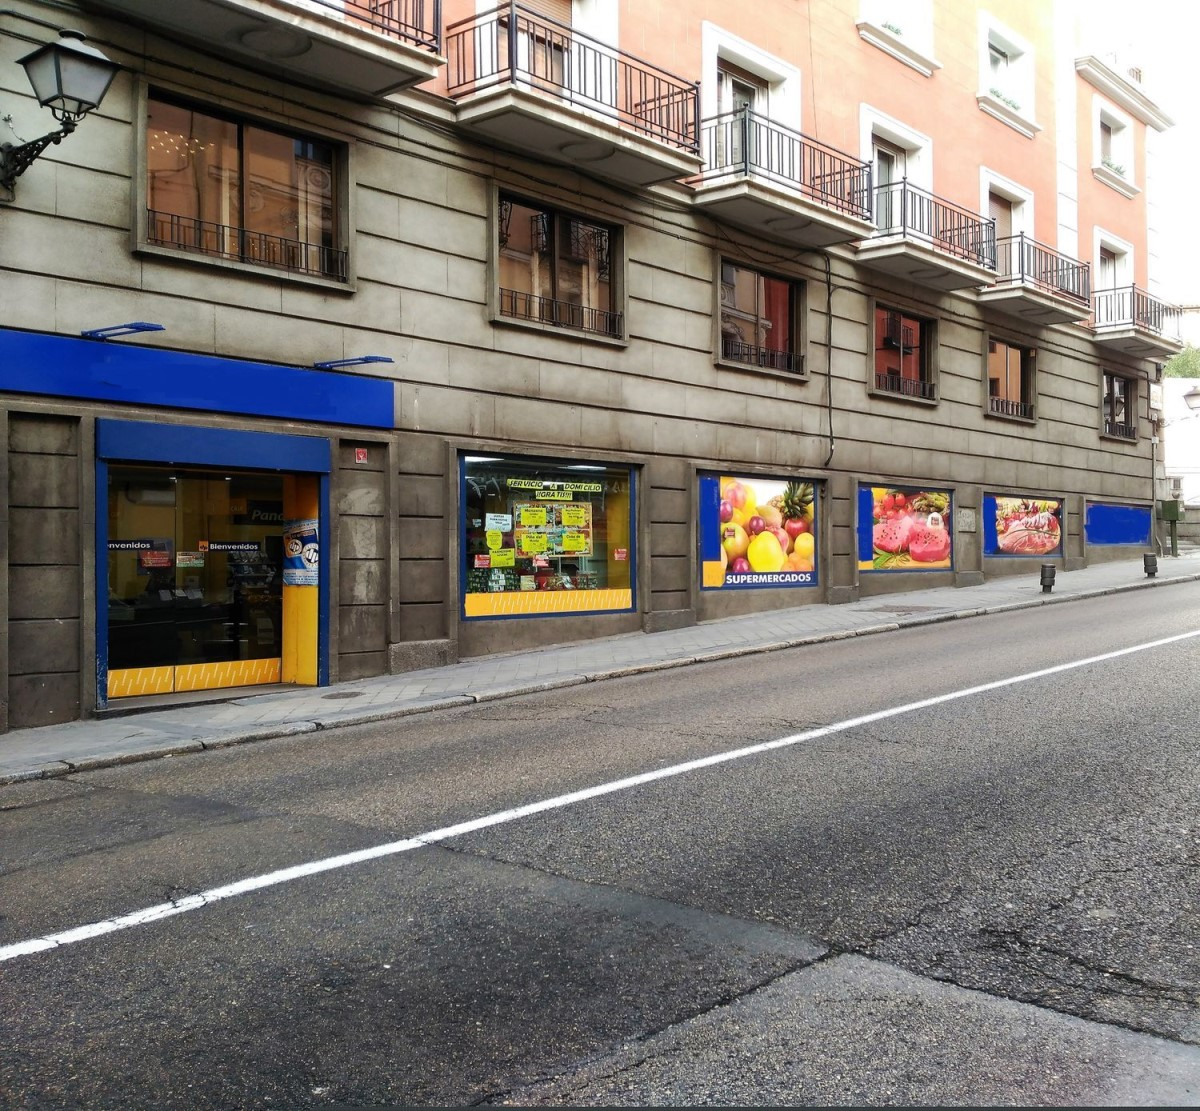 Retail premises  For Rent in Centro, Madrid